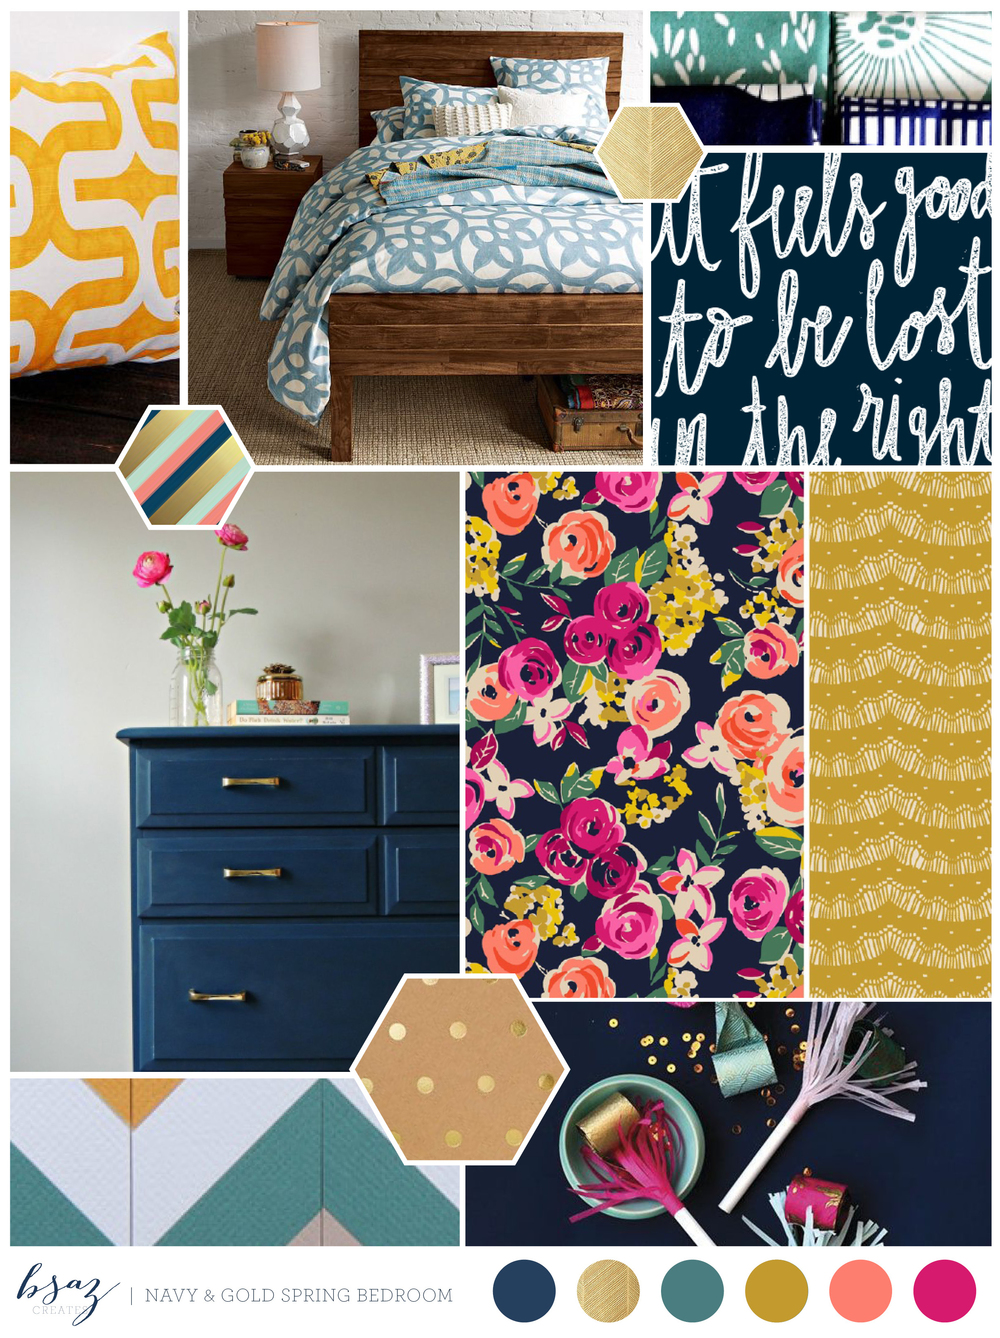 BSaz Creates - Bedroom Inspiration Board - Navy & Gold Spring Pallet